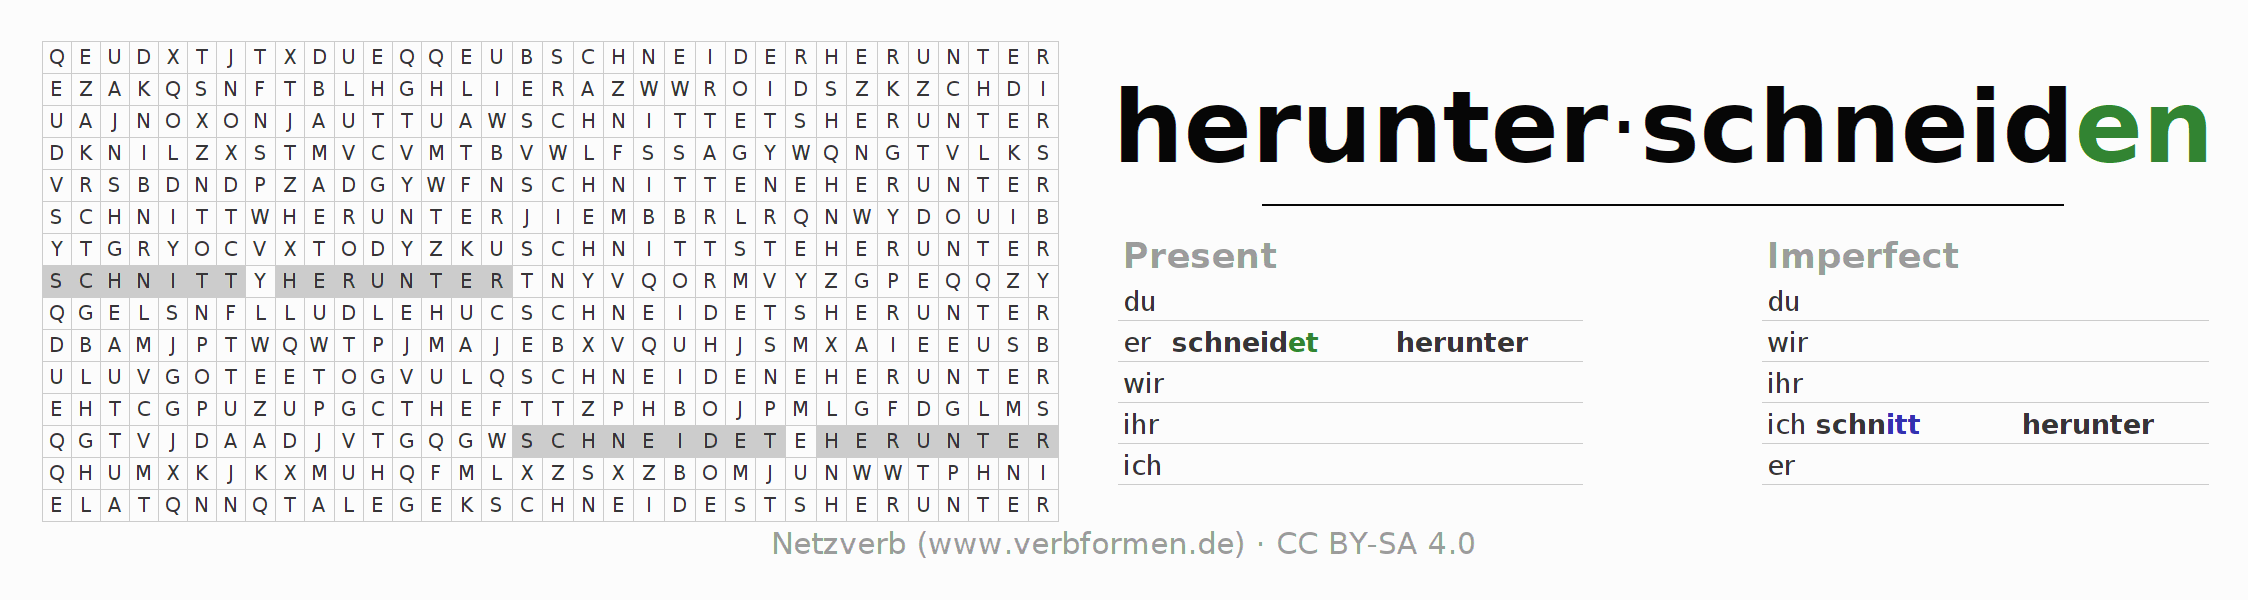 Word search puzzle for the conjugation of the verb herunterschneiden